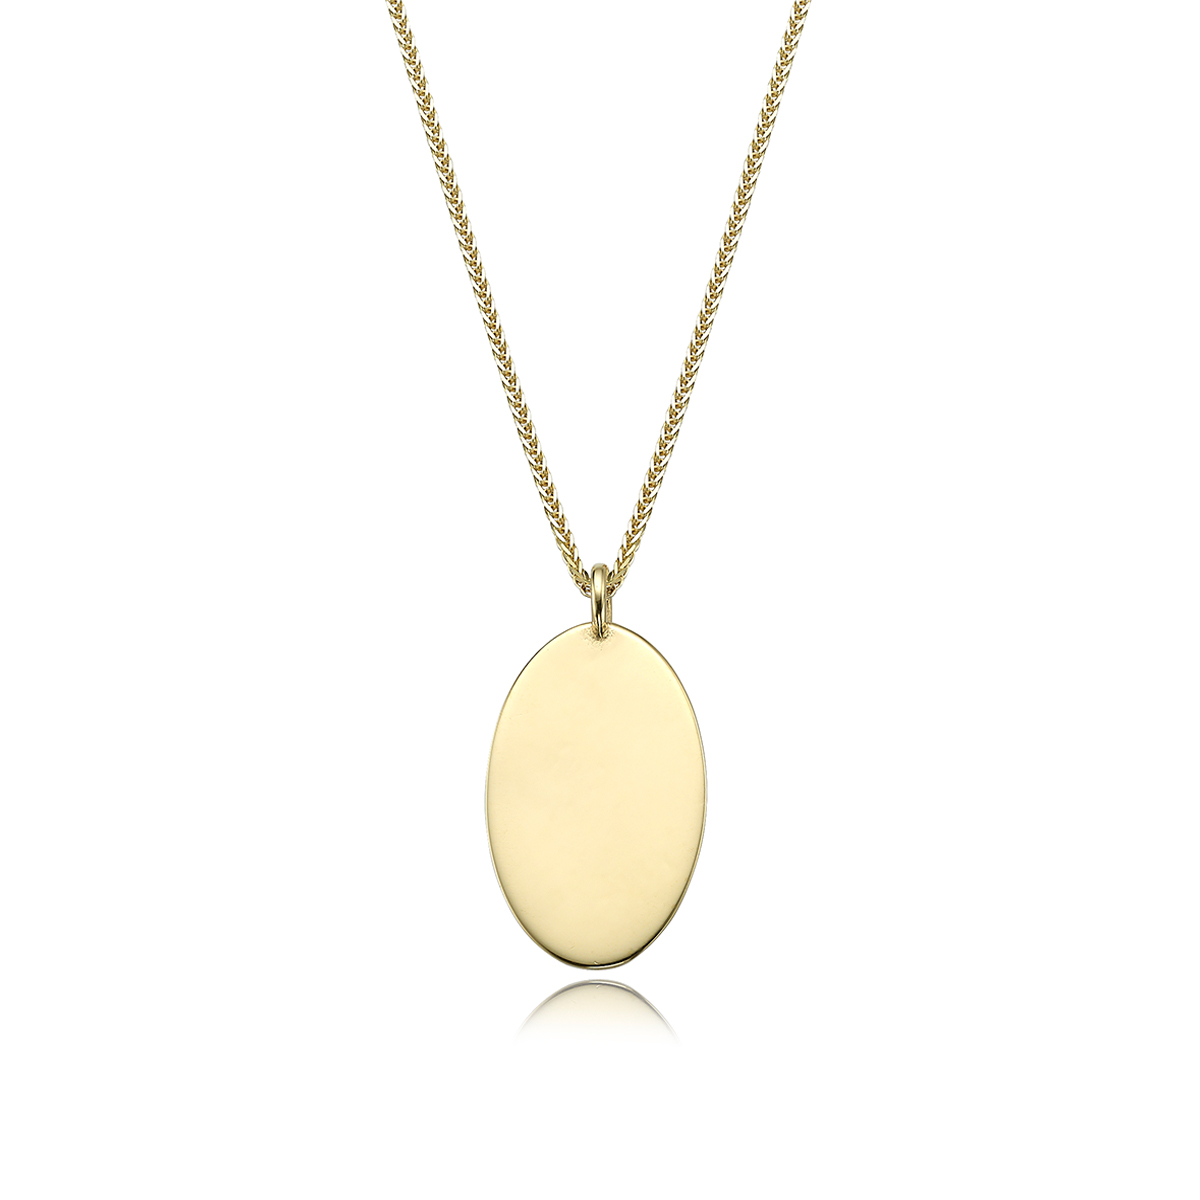 Oval gold name necklace